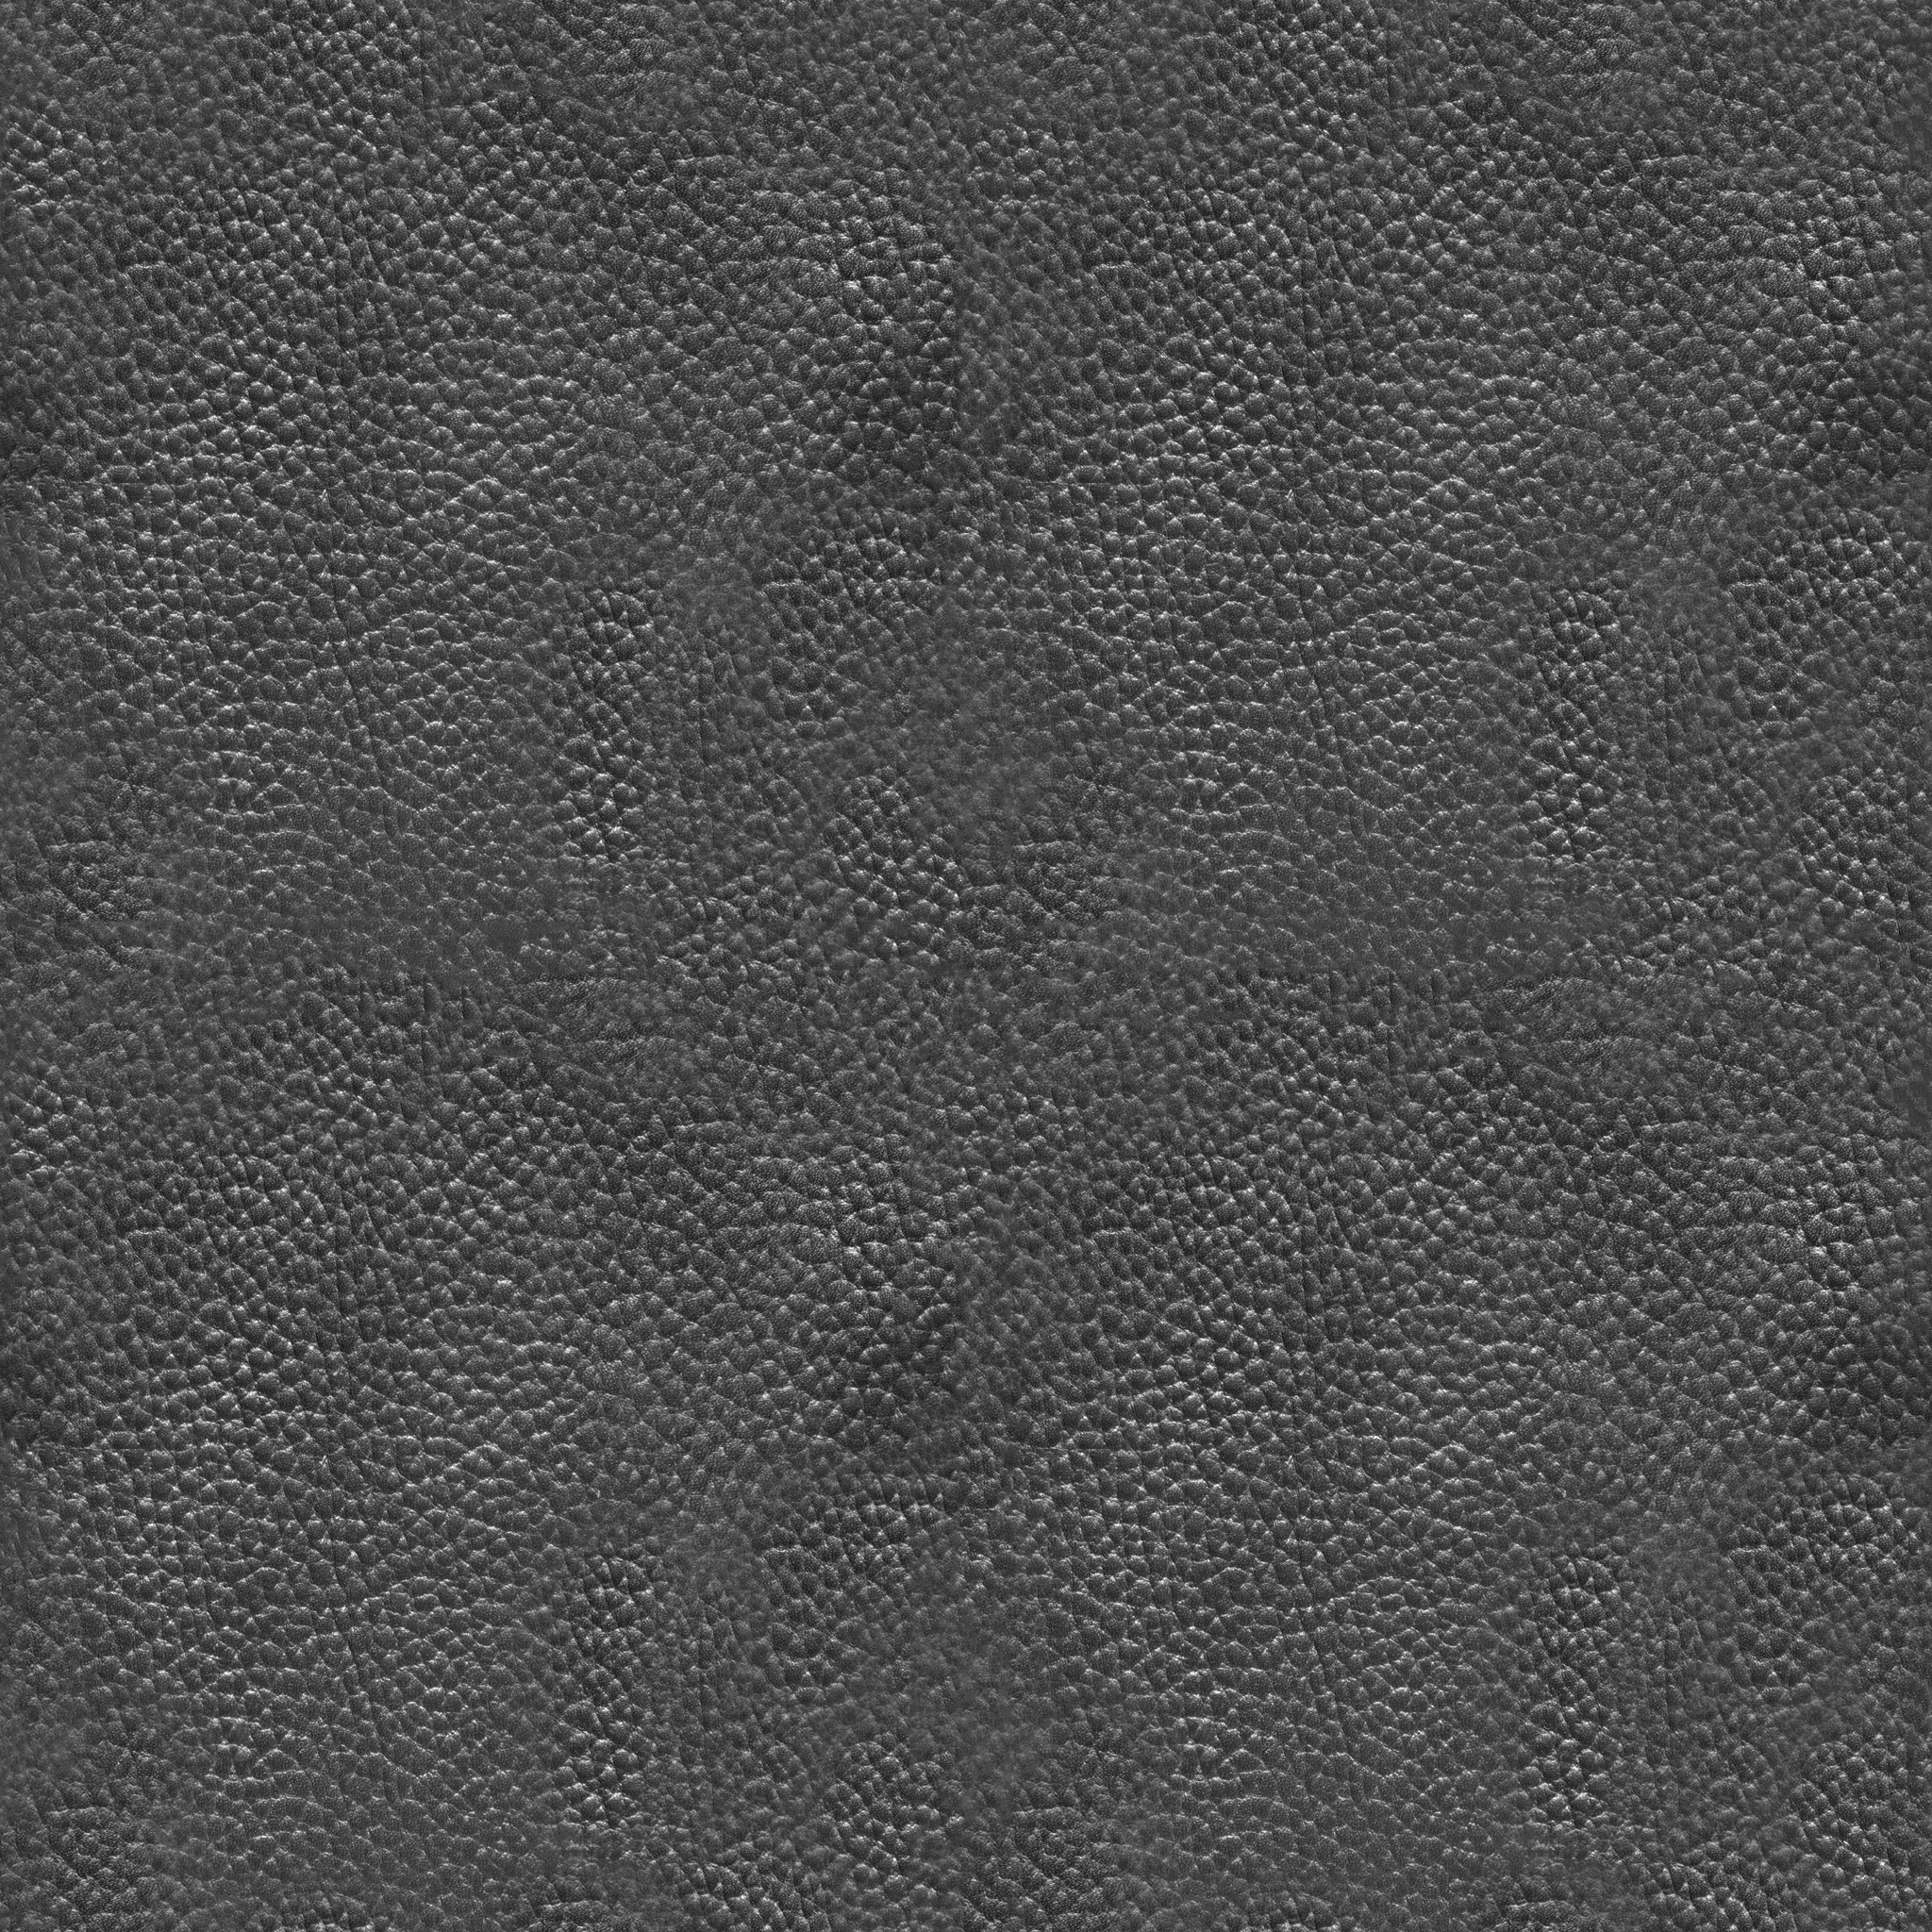 Black leather - Download Royalty Free Texture